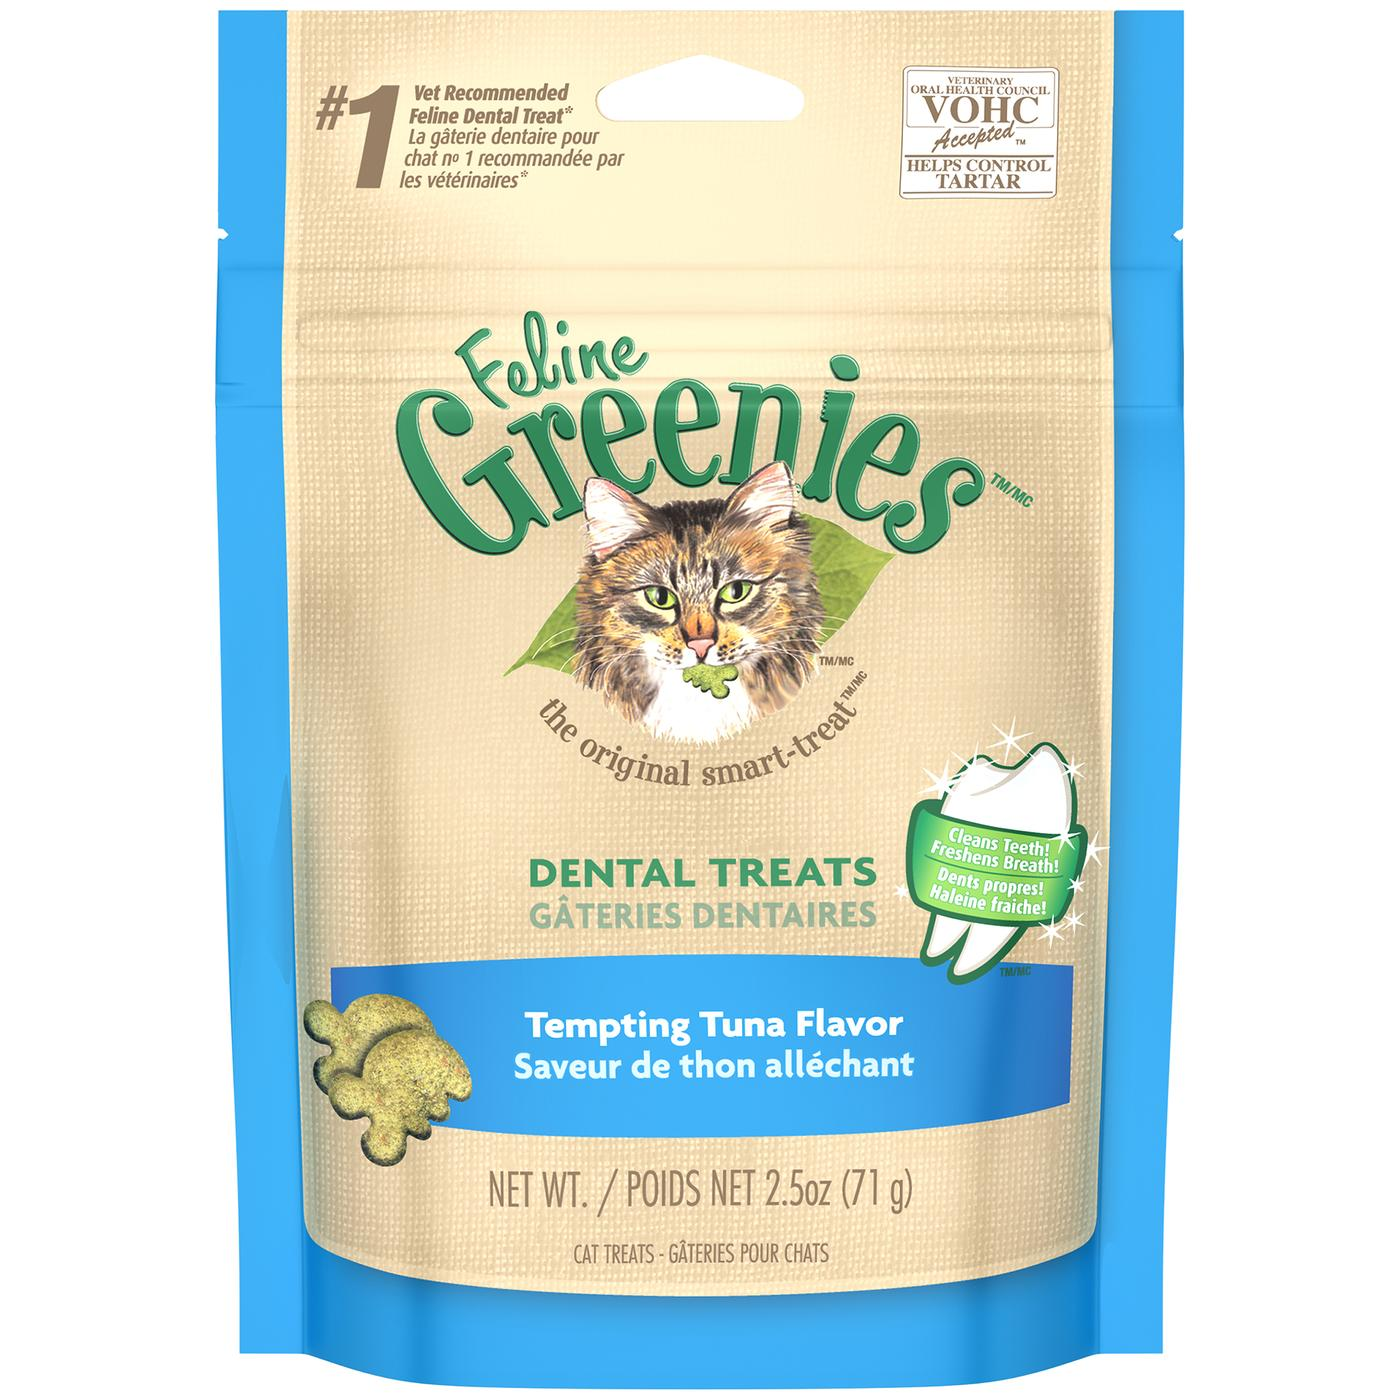 Feline Greenies Dental Treats For Cats Tempting Tuna Flavor 2.5 Oz.